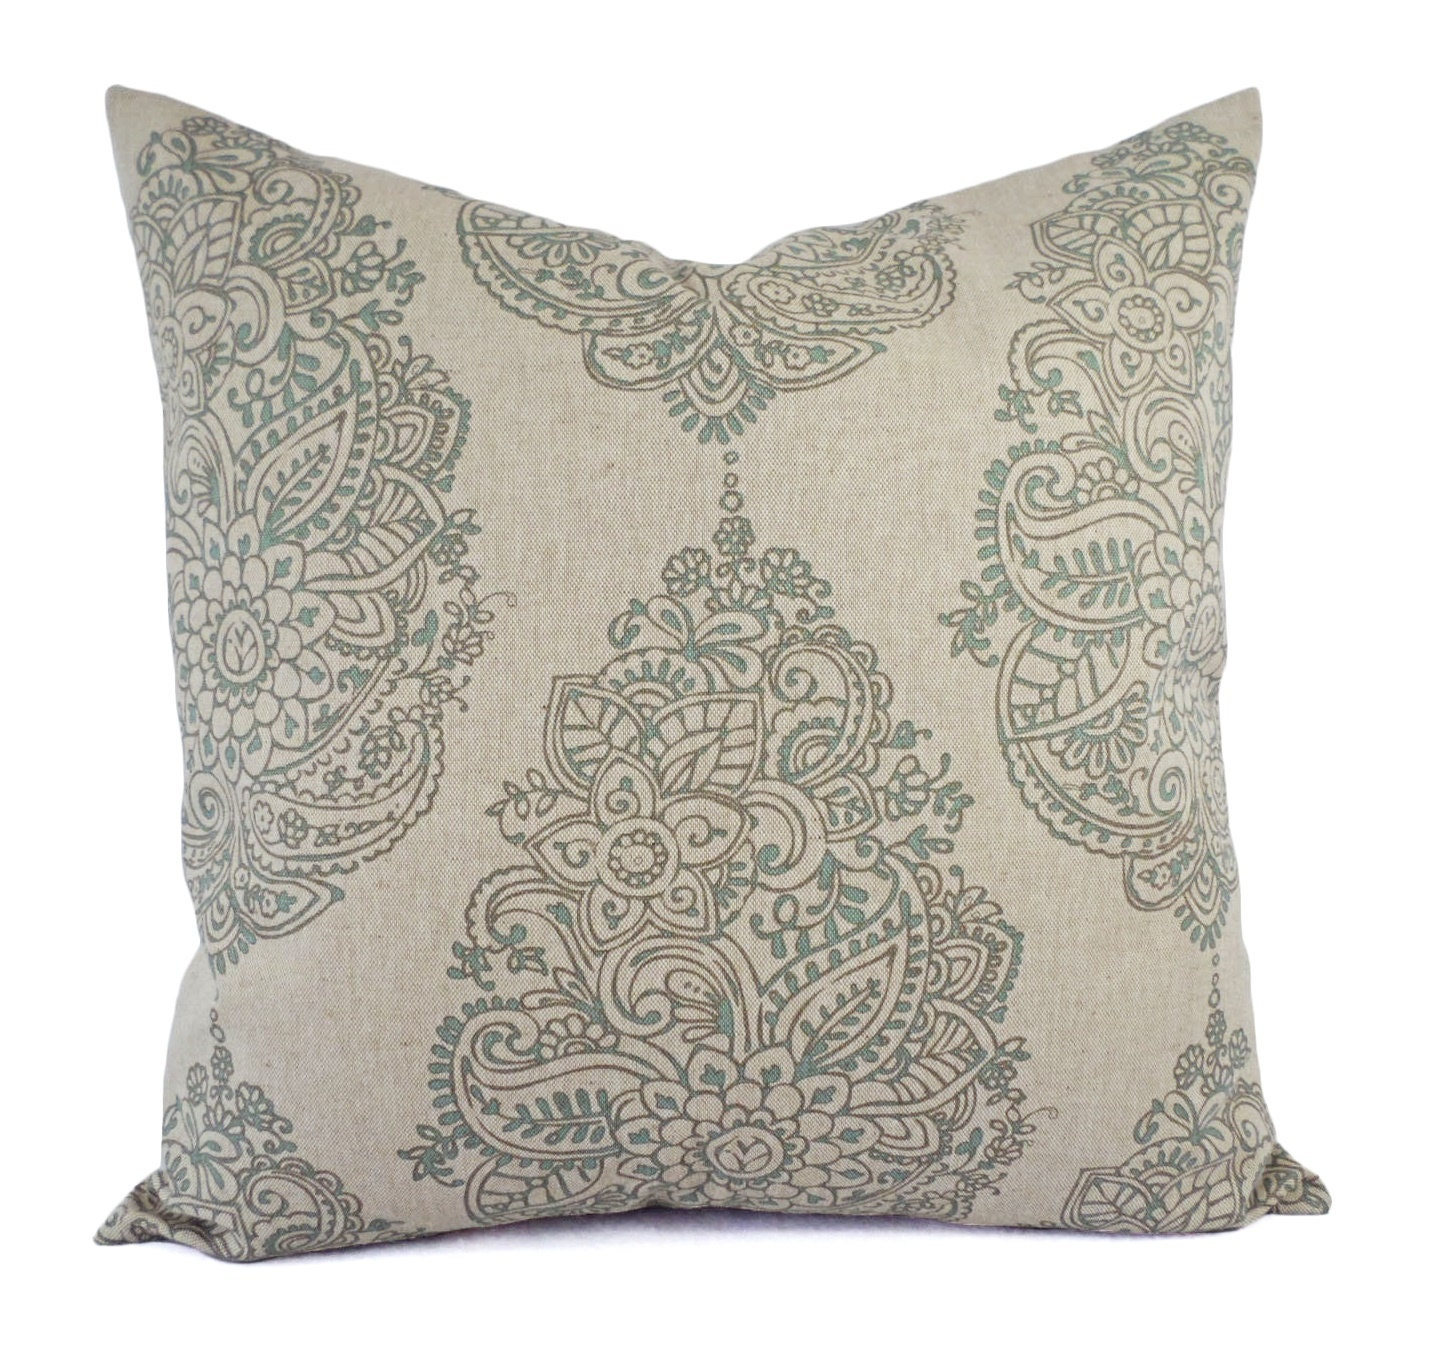 Throw Pillows Taupe : Taupe and Blue Decorative Pillow Covers Two Floral Throw